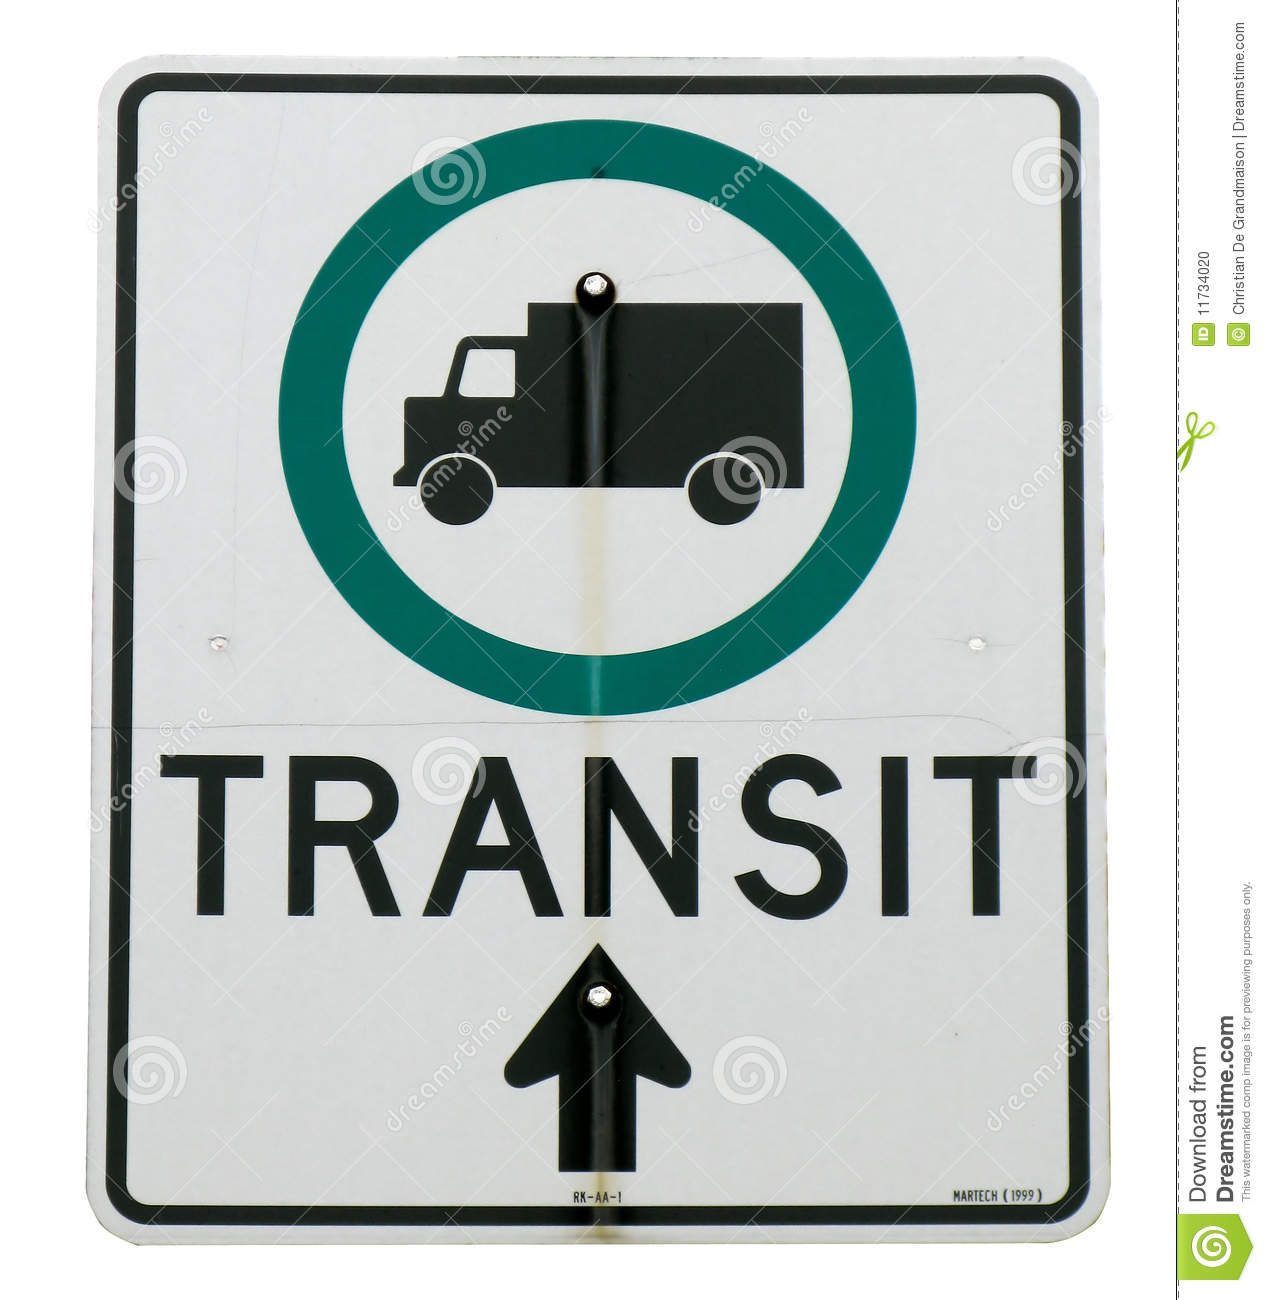 Transit Sign Stock Photo Image Of Lorry, Transit. Aires Signs Of Stroke. Cancer Treatment Signs. Sparklebox Signs Of Stroke. Books Signs. December 20 Signs. Travel Signs Of Stroke. Hindi Language Signs Of Stroke. Early Onset Signs